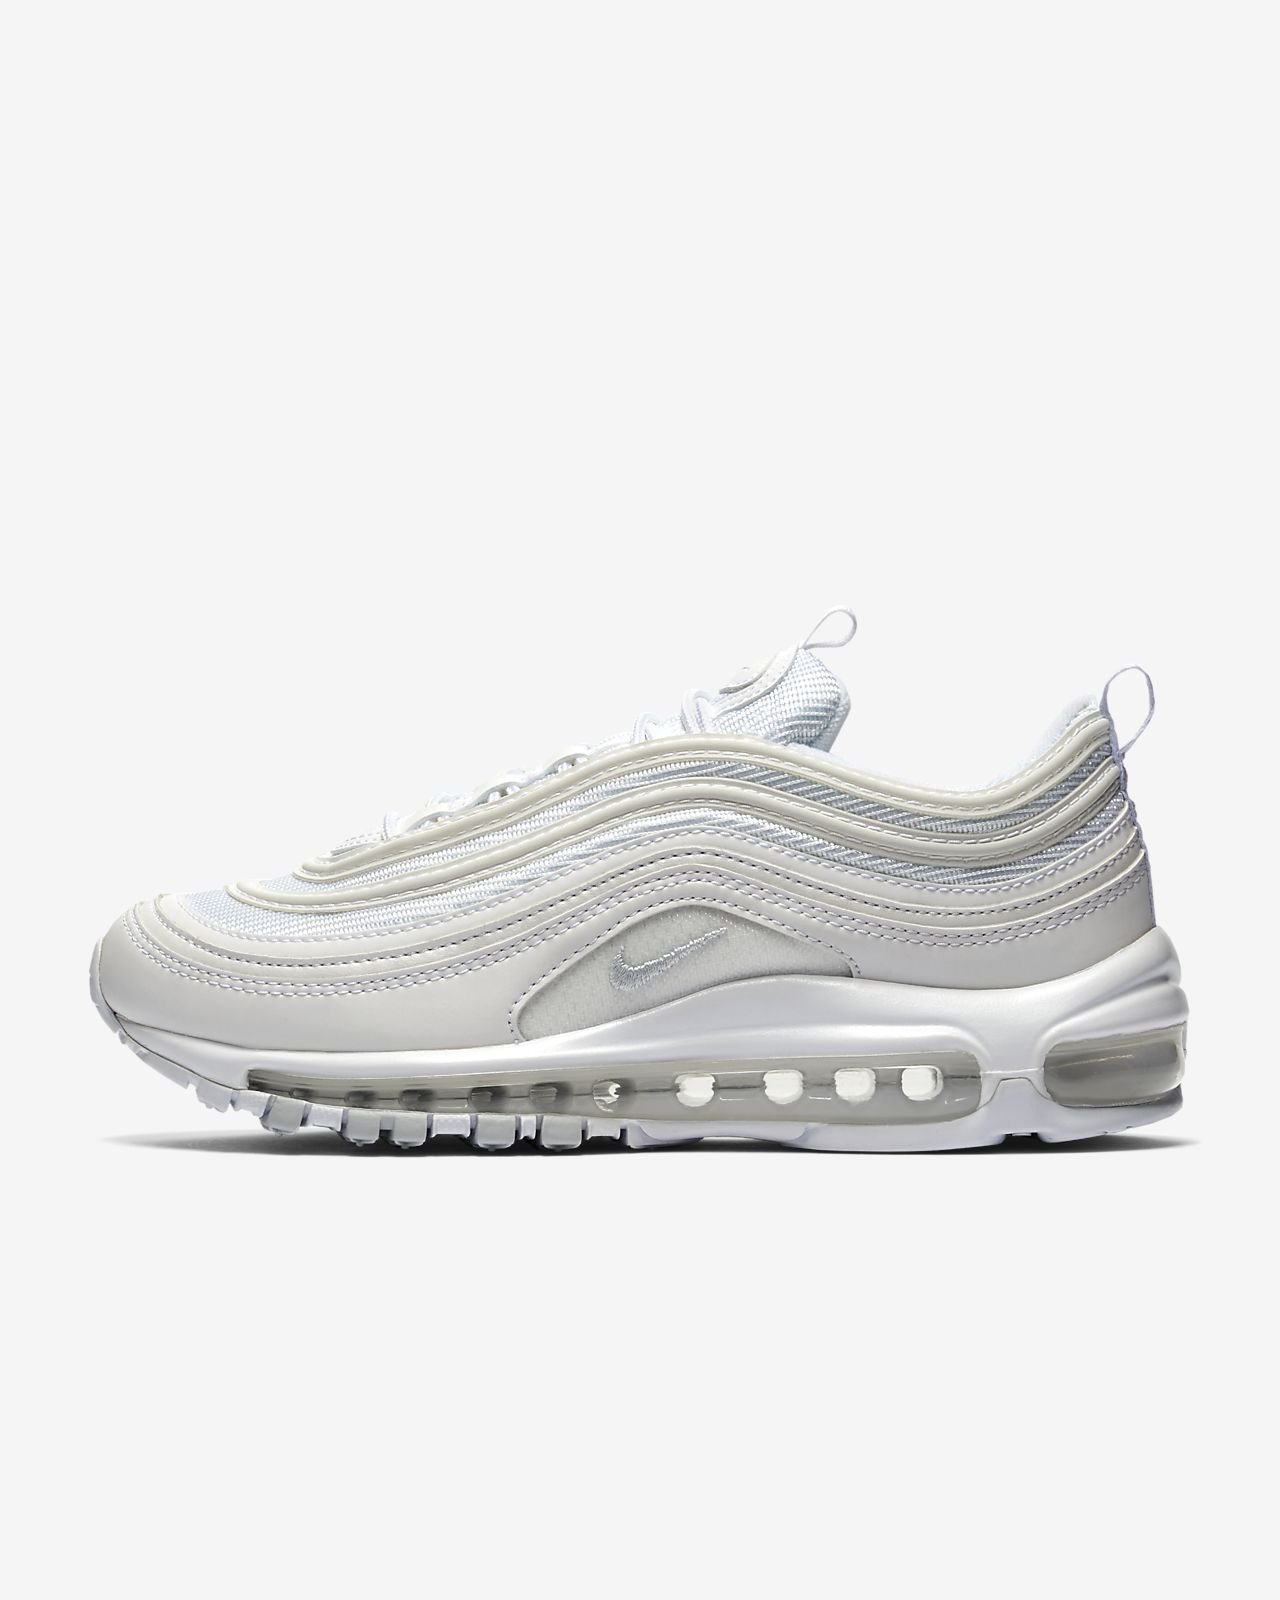 Nike Air Max 97 | How to wear | Aliexpress